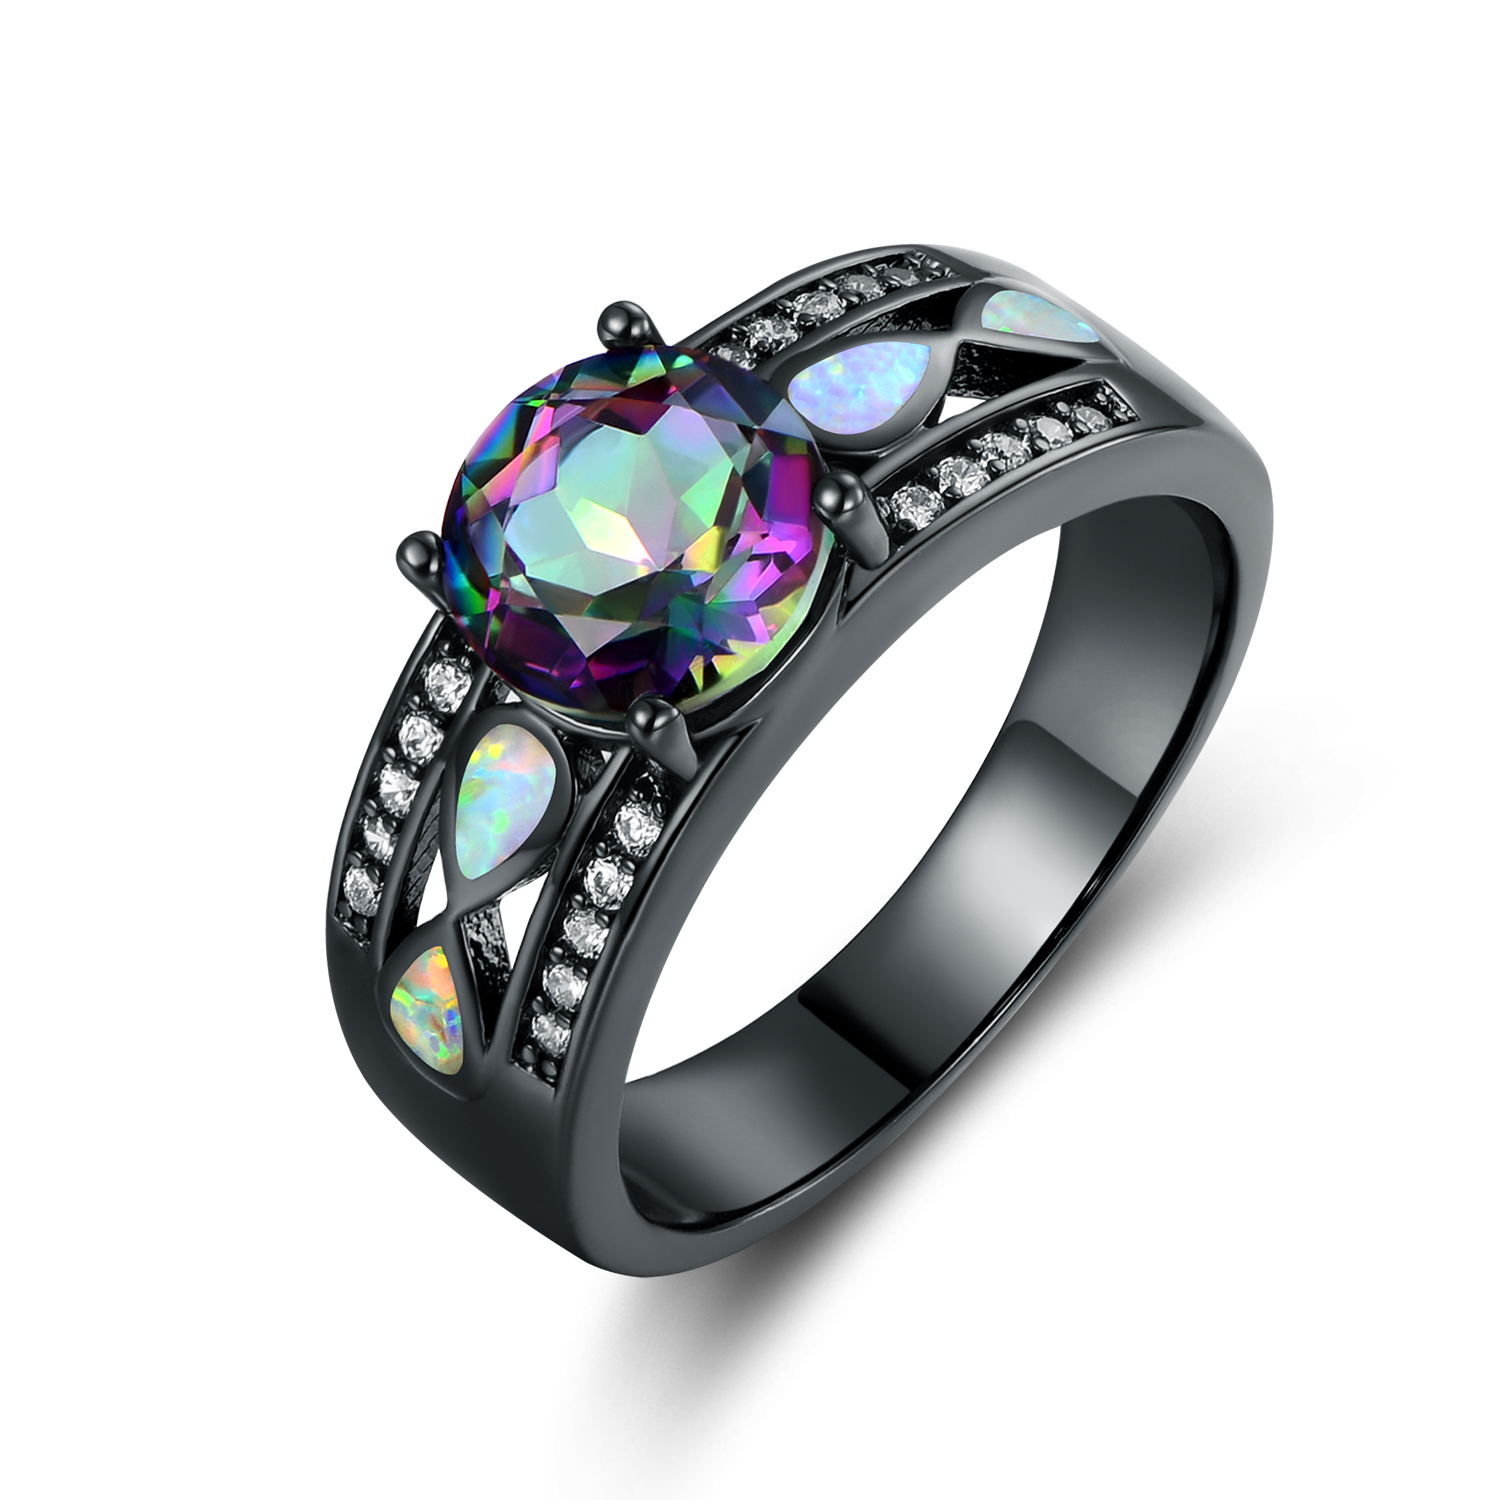 ring images were opal best black would the gemstones band pinterest plain perfect and be on sayscraftymommy wedding rings if engagement